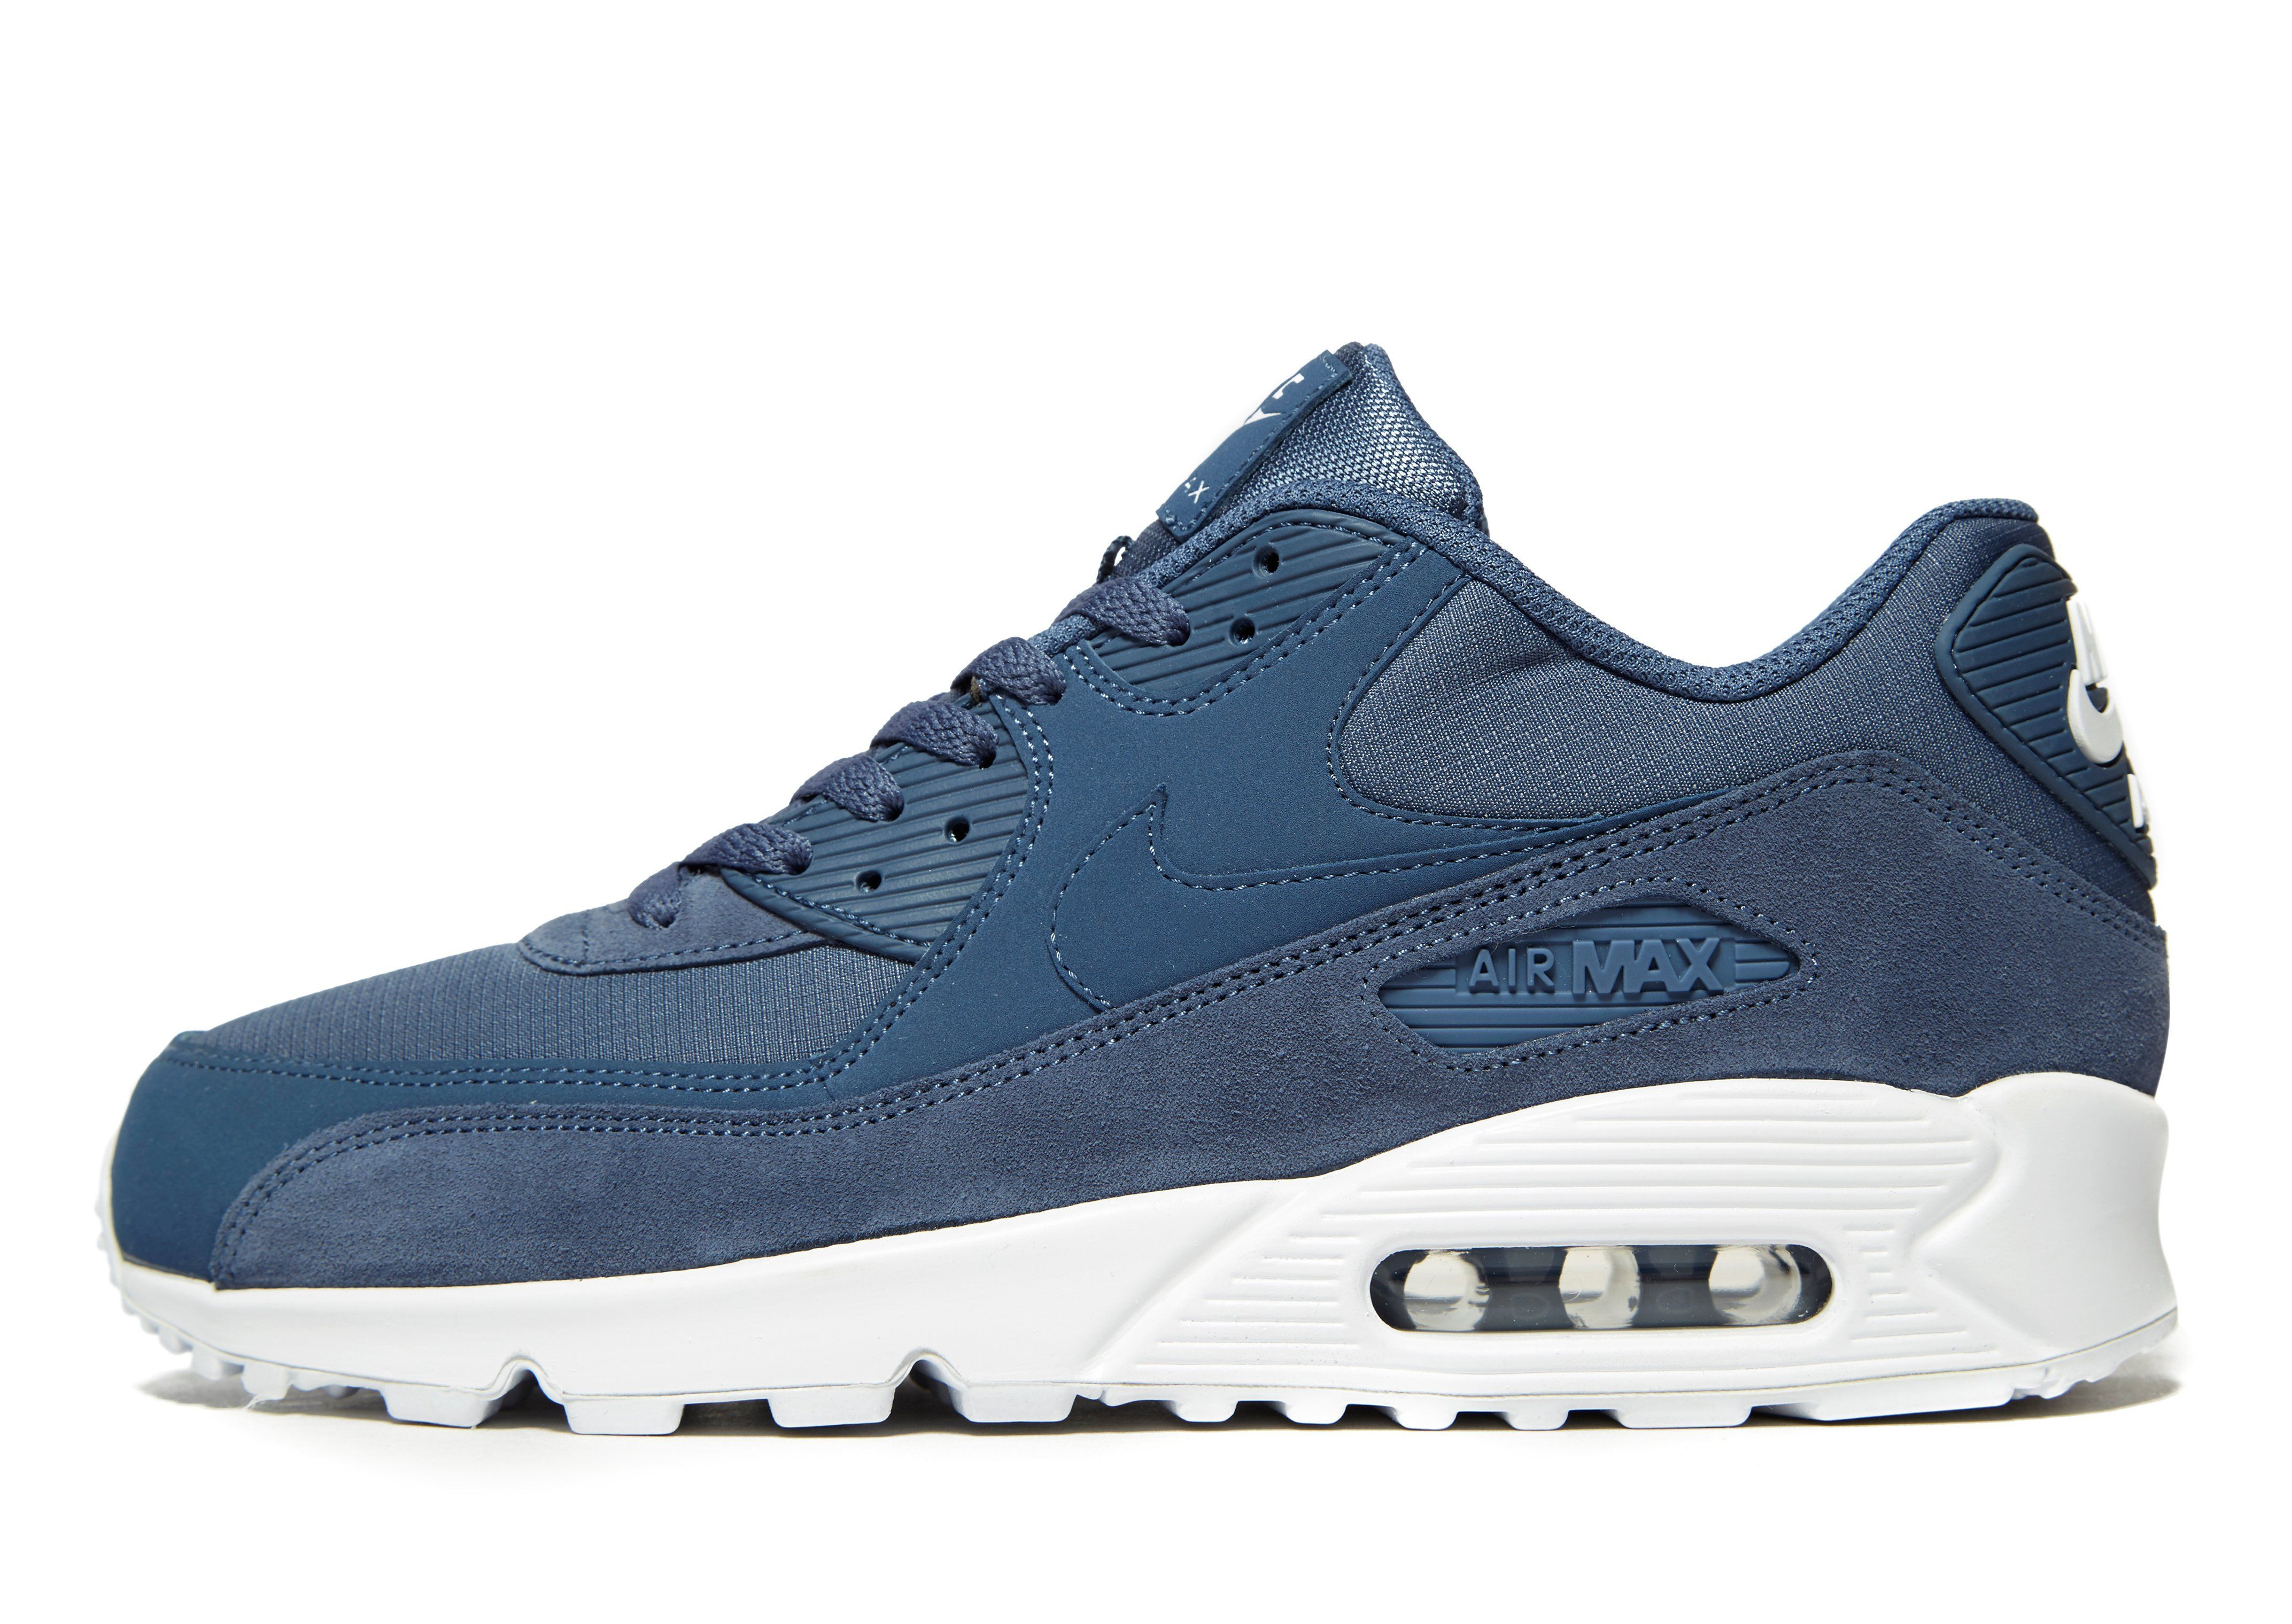 new style fbc74 576ad Nike Air Max 90 Essential - Shop online for Nike Air Max 90 Essential with  JD